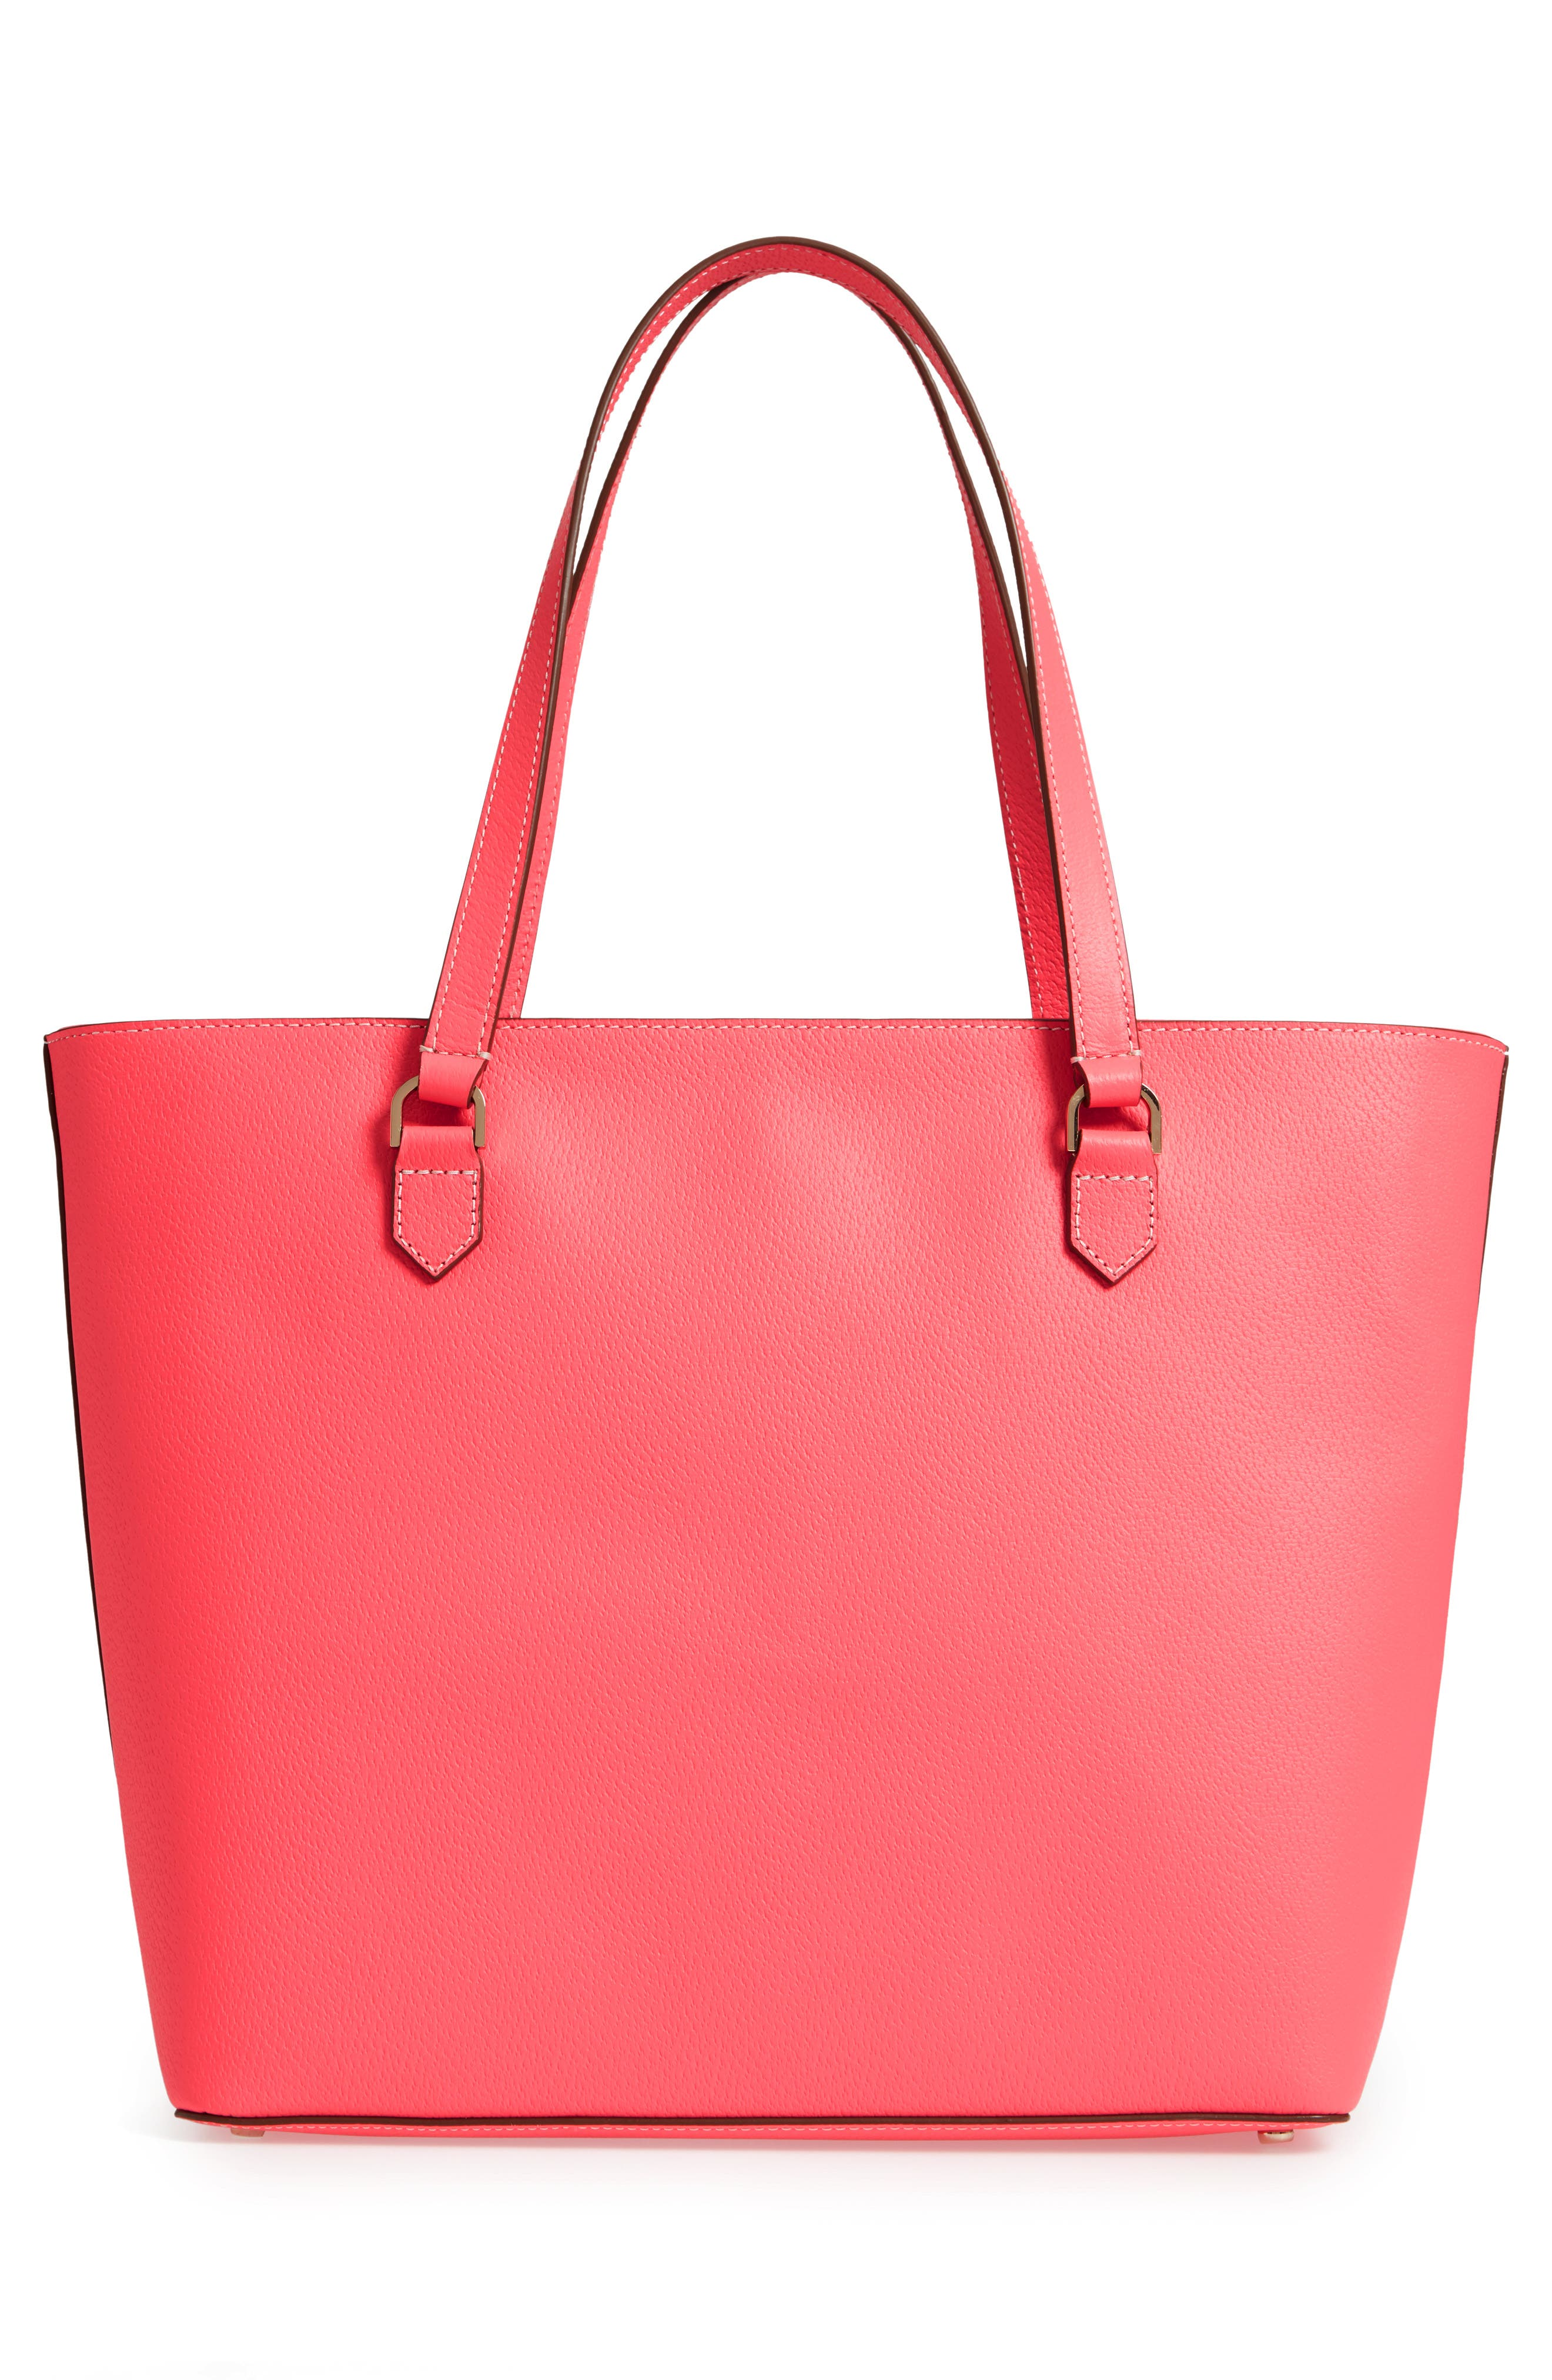 thompson street - kimberly leather tote,                             Alternate thumbnail 3, color,                             BRIGHT FLAMINGO